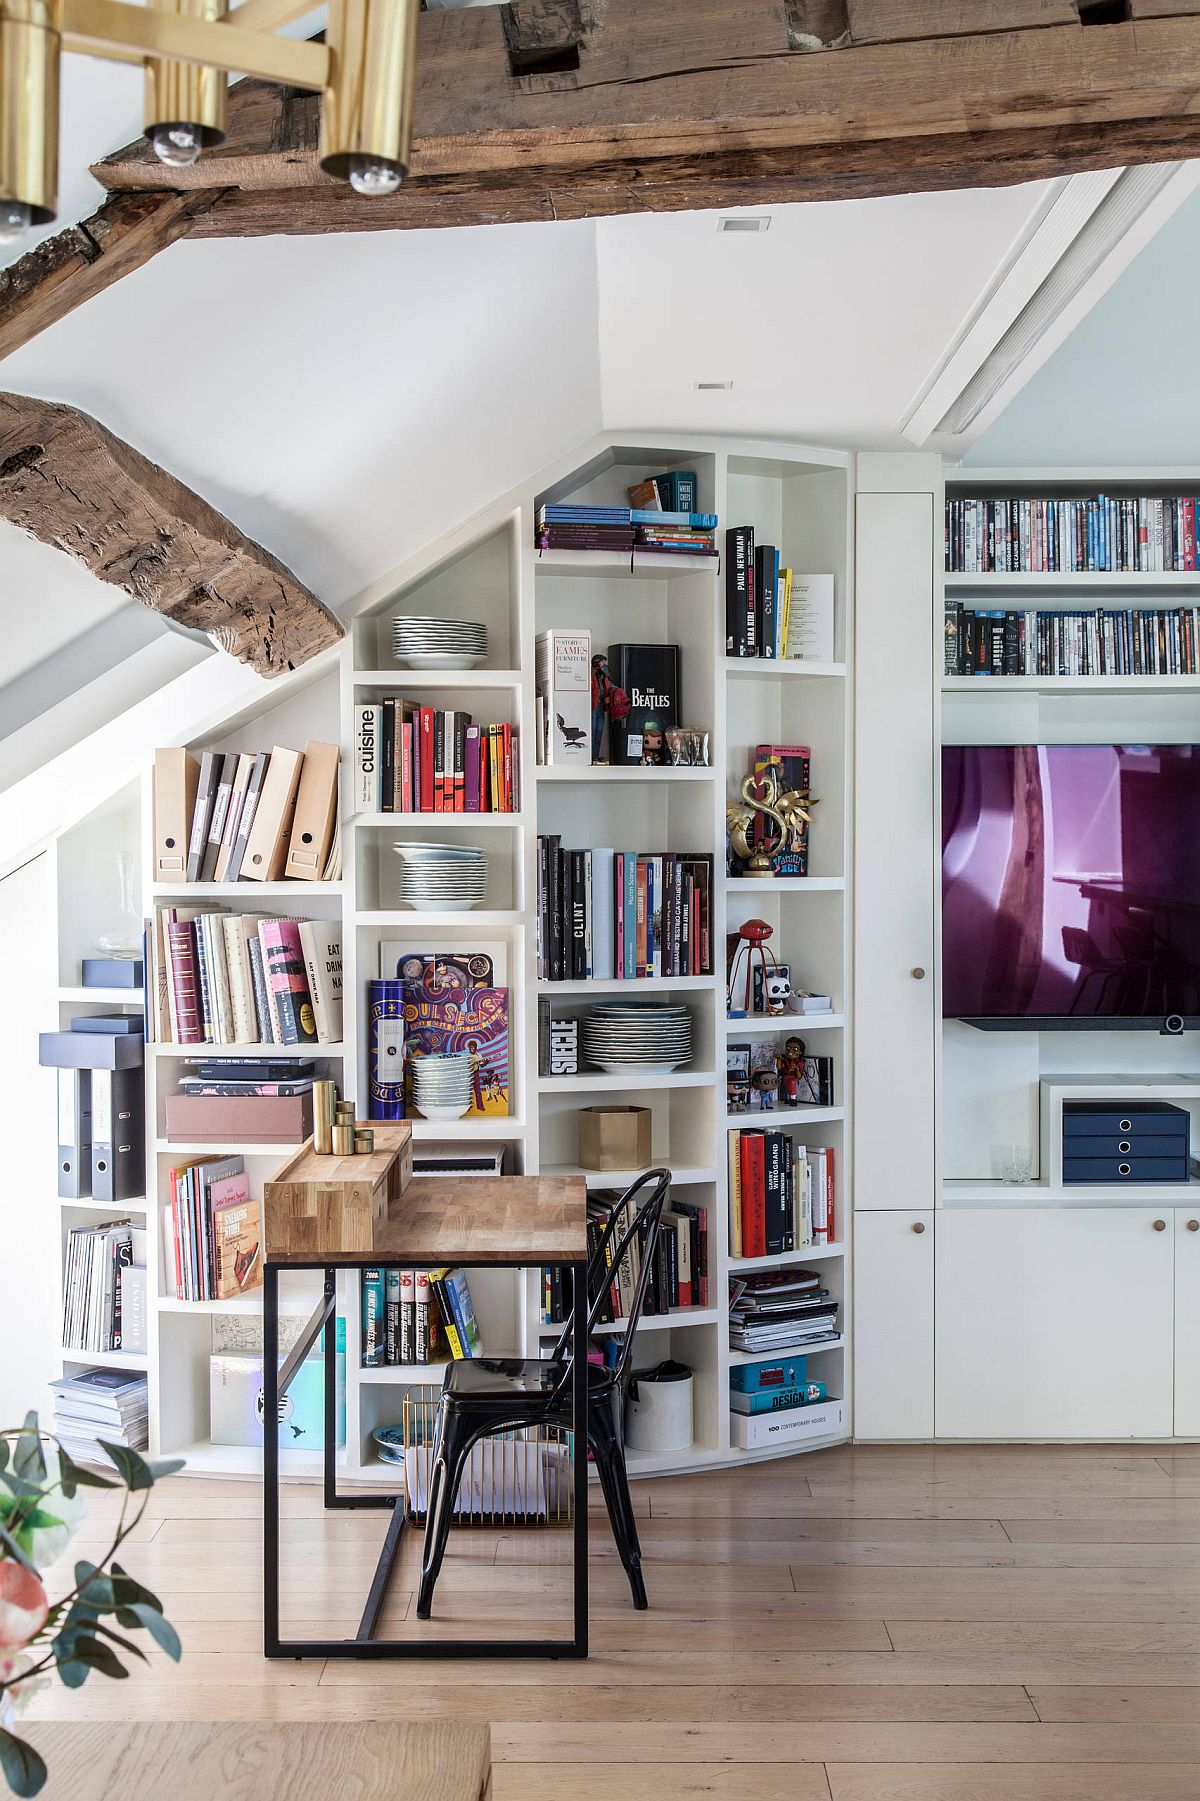 Bookshelves with smart design are an integral part of the perfect Parisian style home office